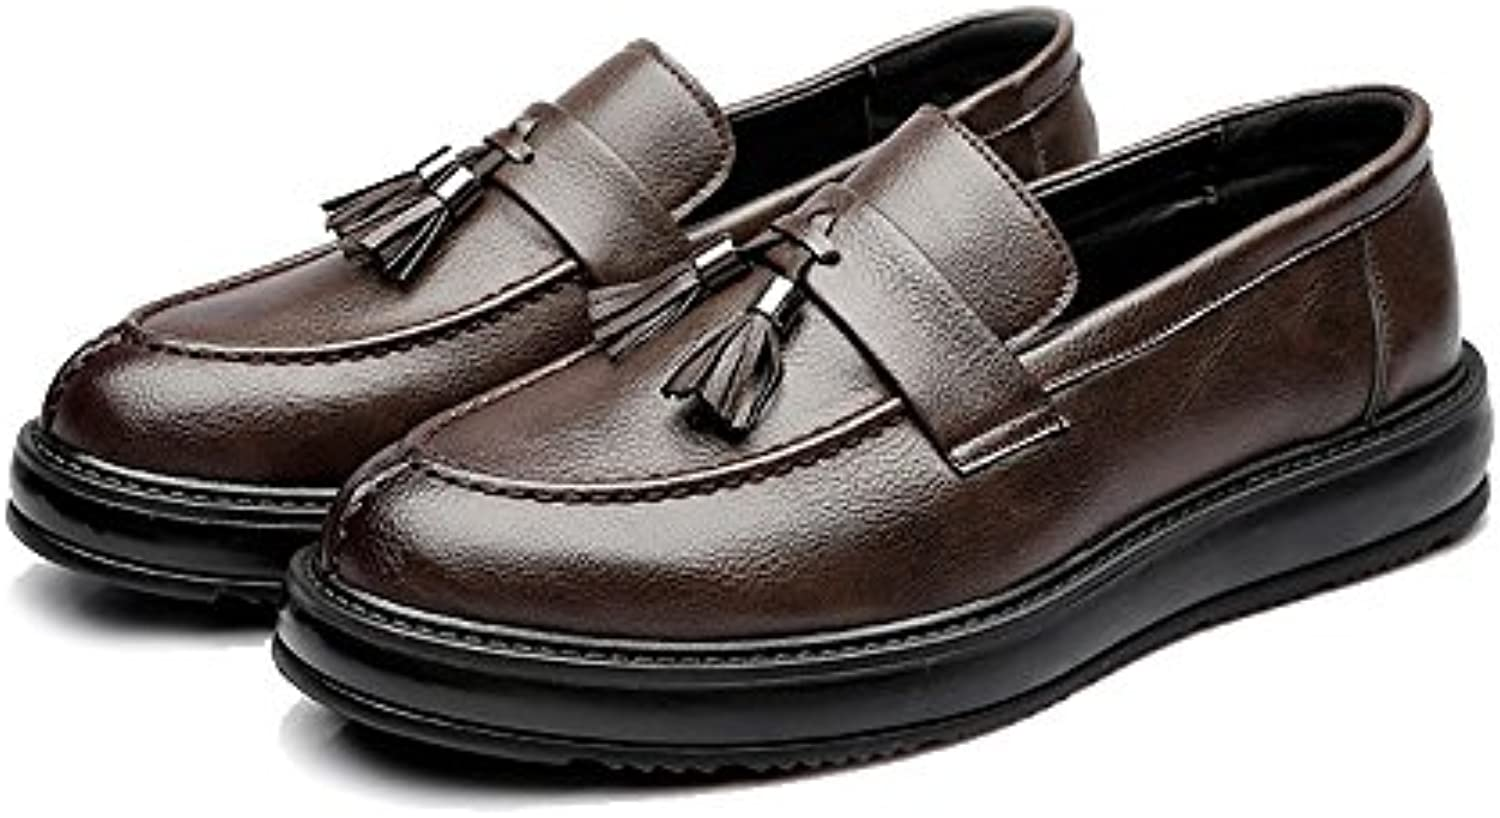 Xujw shoes  2018 Schuhe herren  Herren Business PU Lederschuhe Klassische Slip on Loafers Quaste Anhaumlnger Dekoration